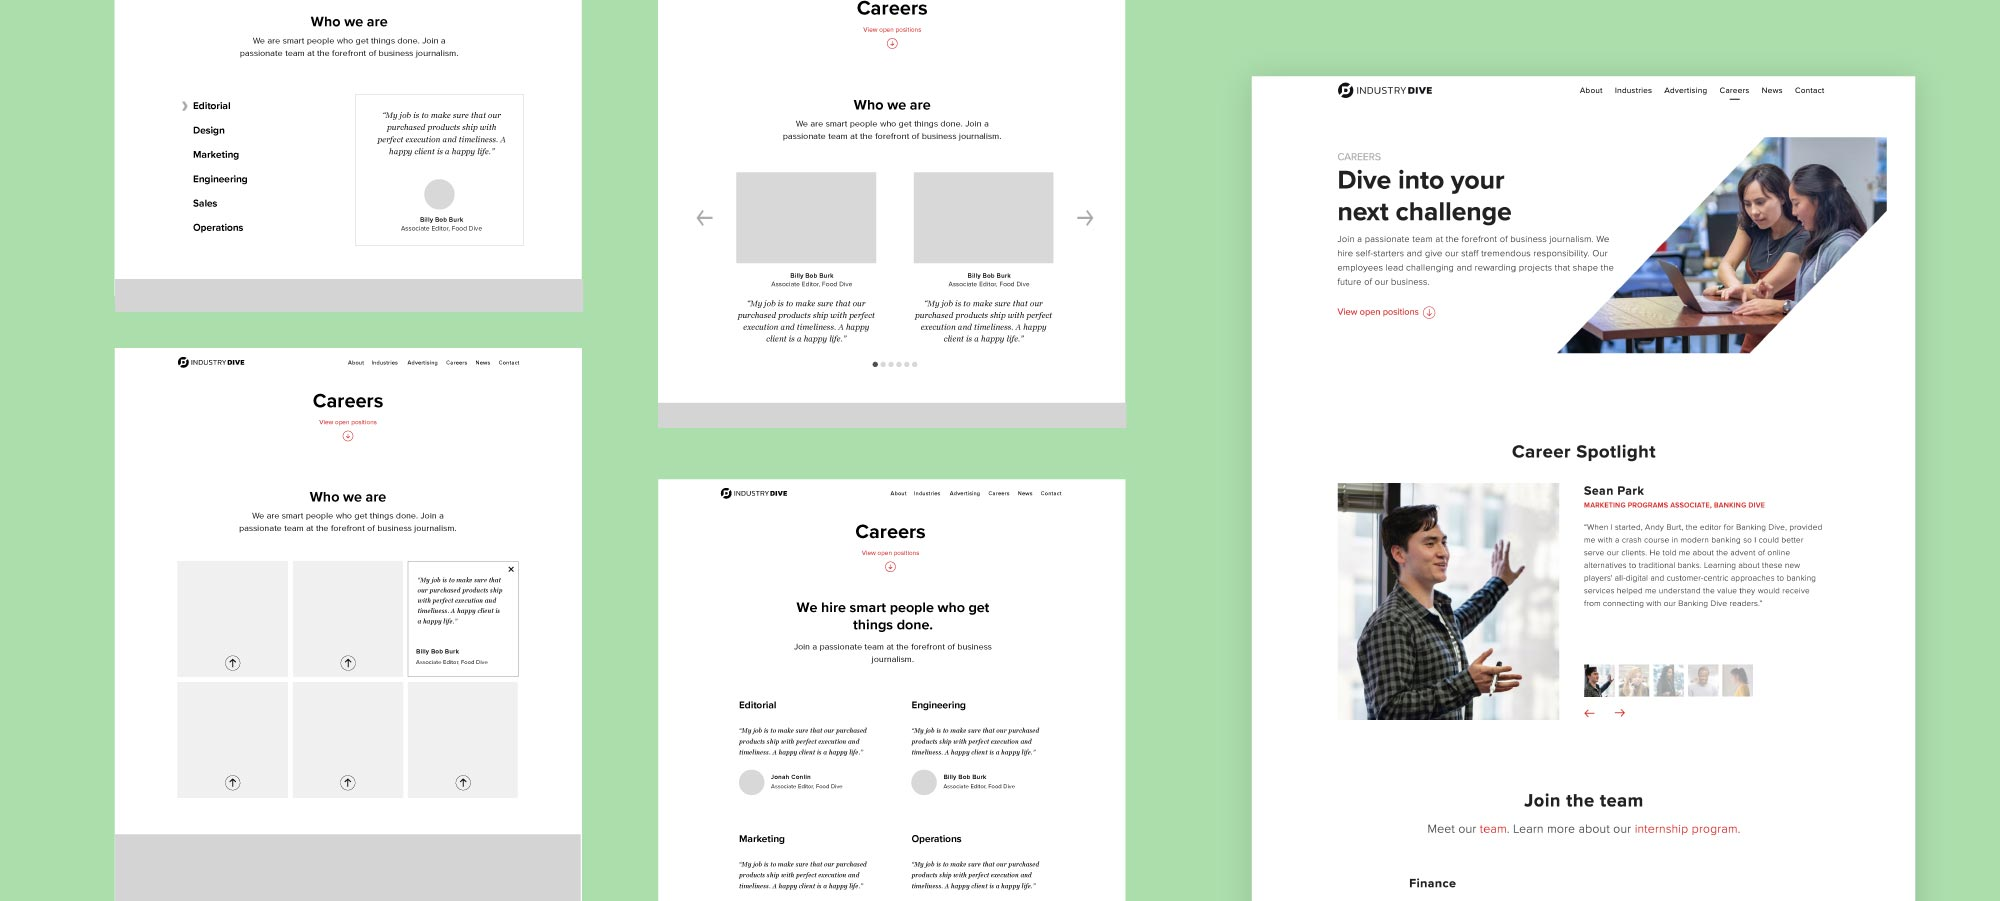 Mockups for the career spotlight section and the final design.